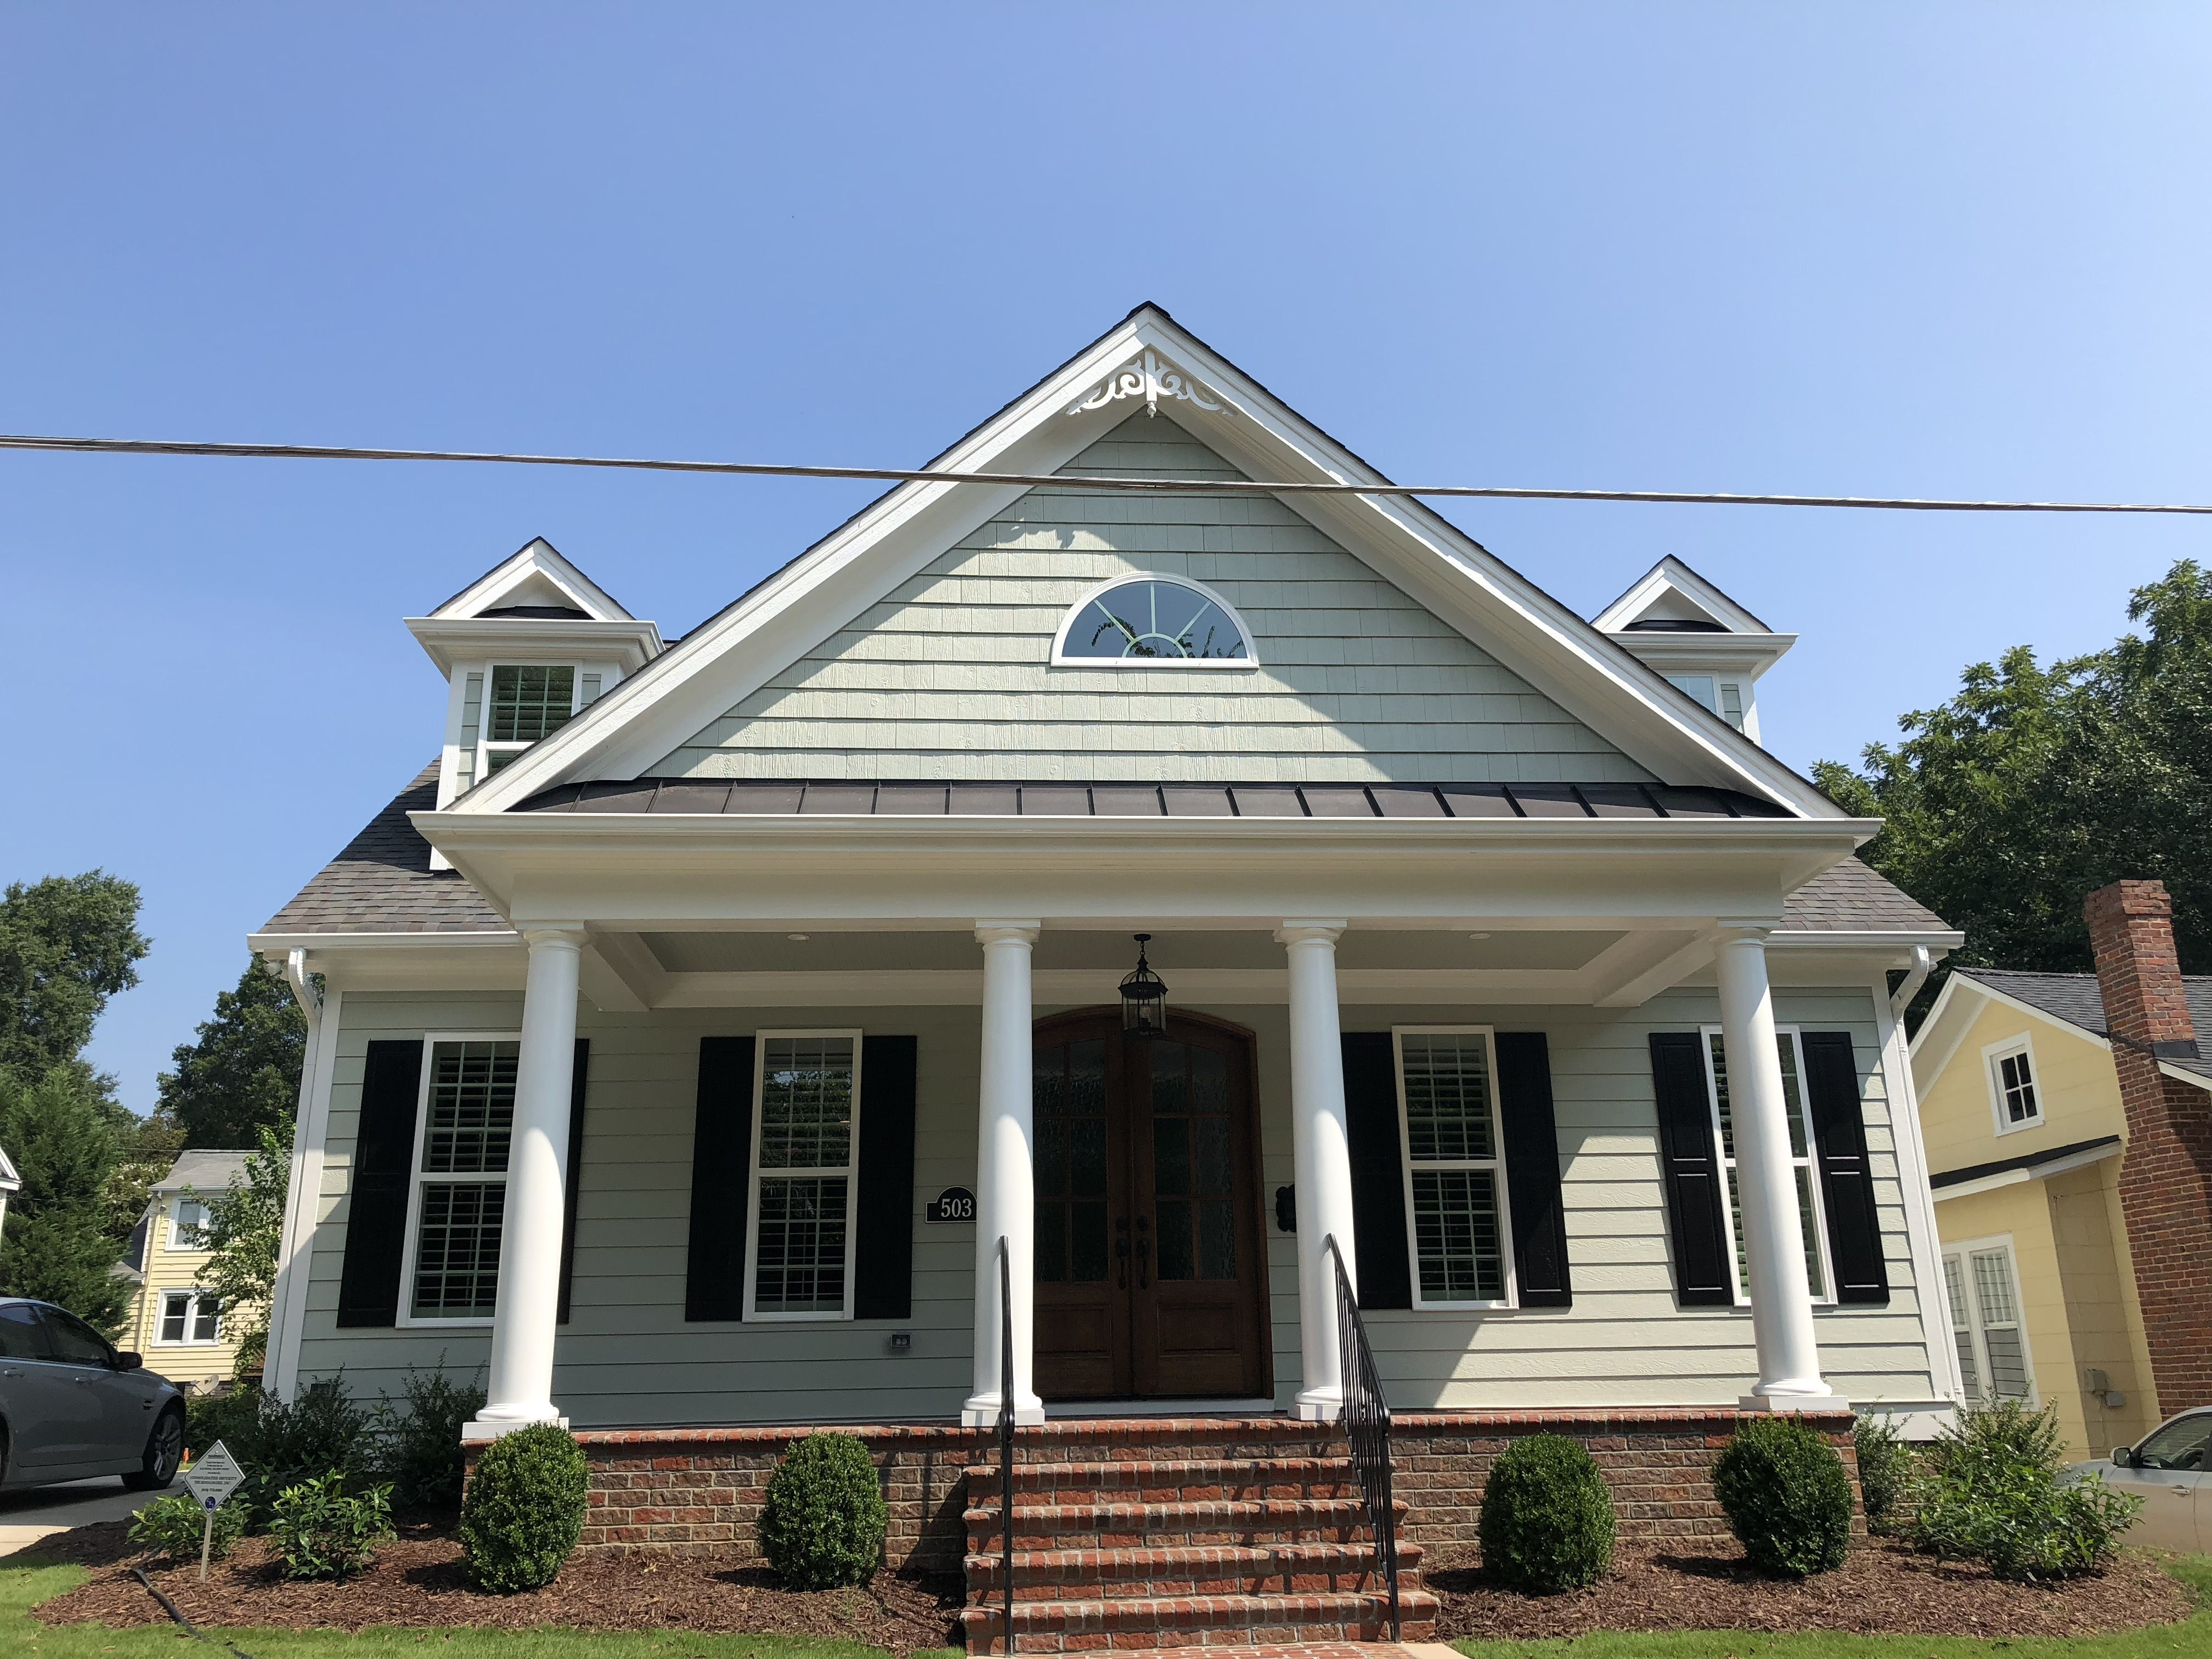 L and L of Raleigh built this custom home Inside the belt